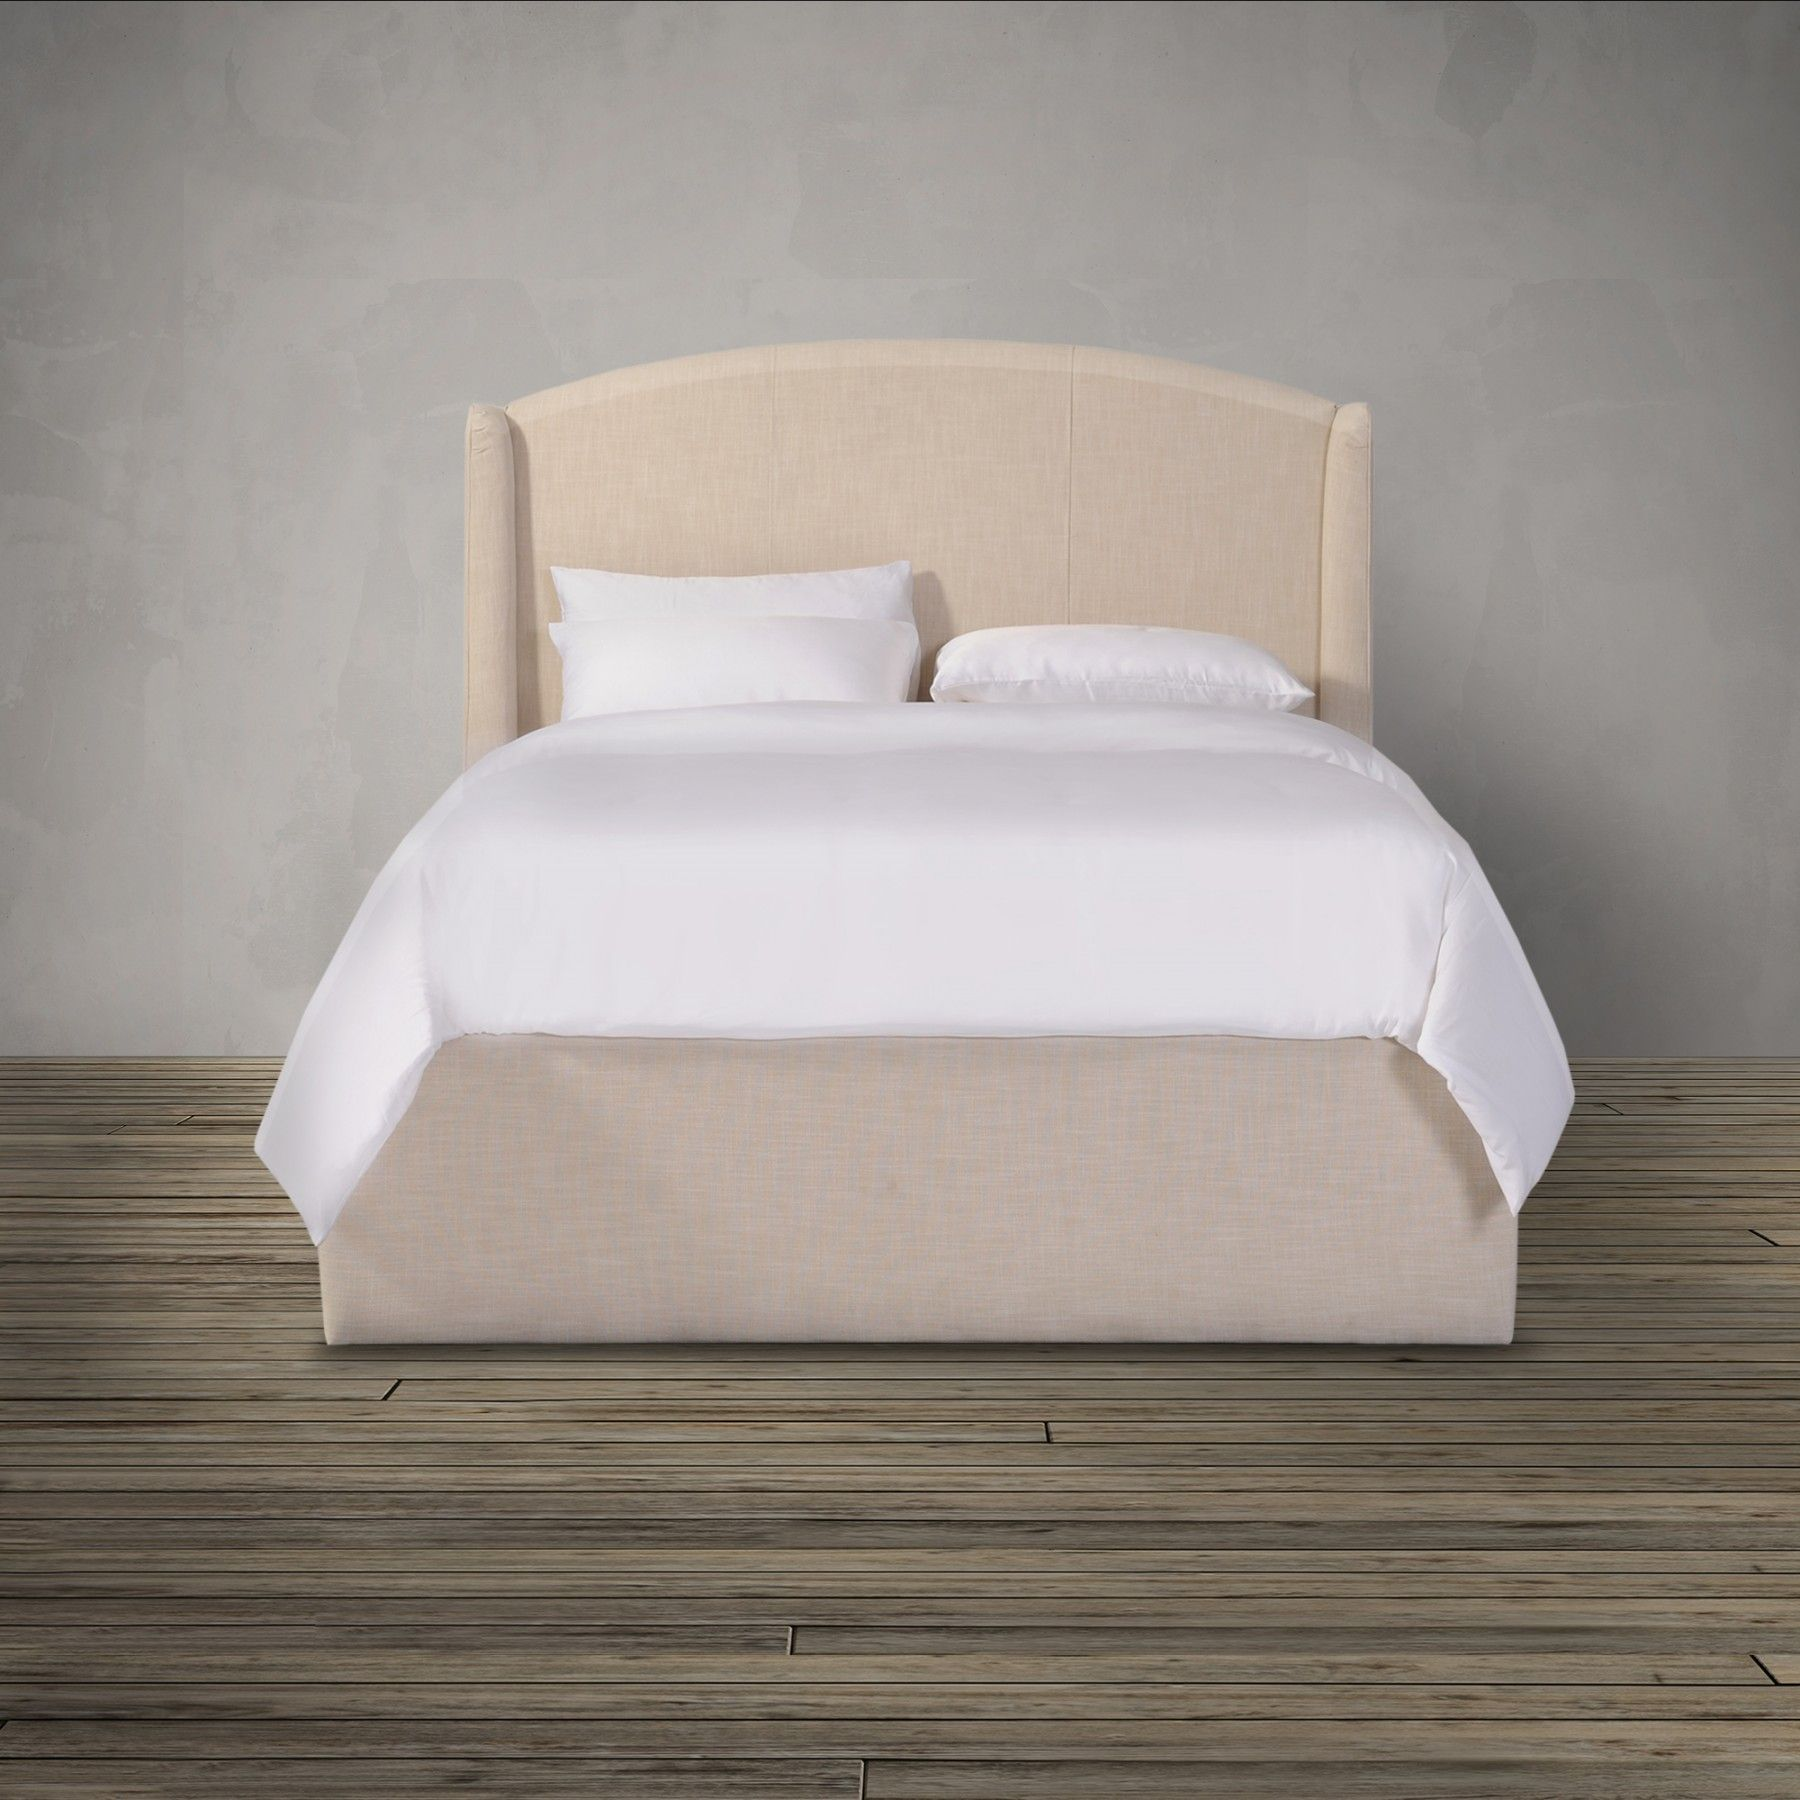 Best Beaudoin Giorgio Bed Sleep Country Canada Bed 640 x 480